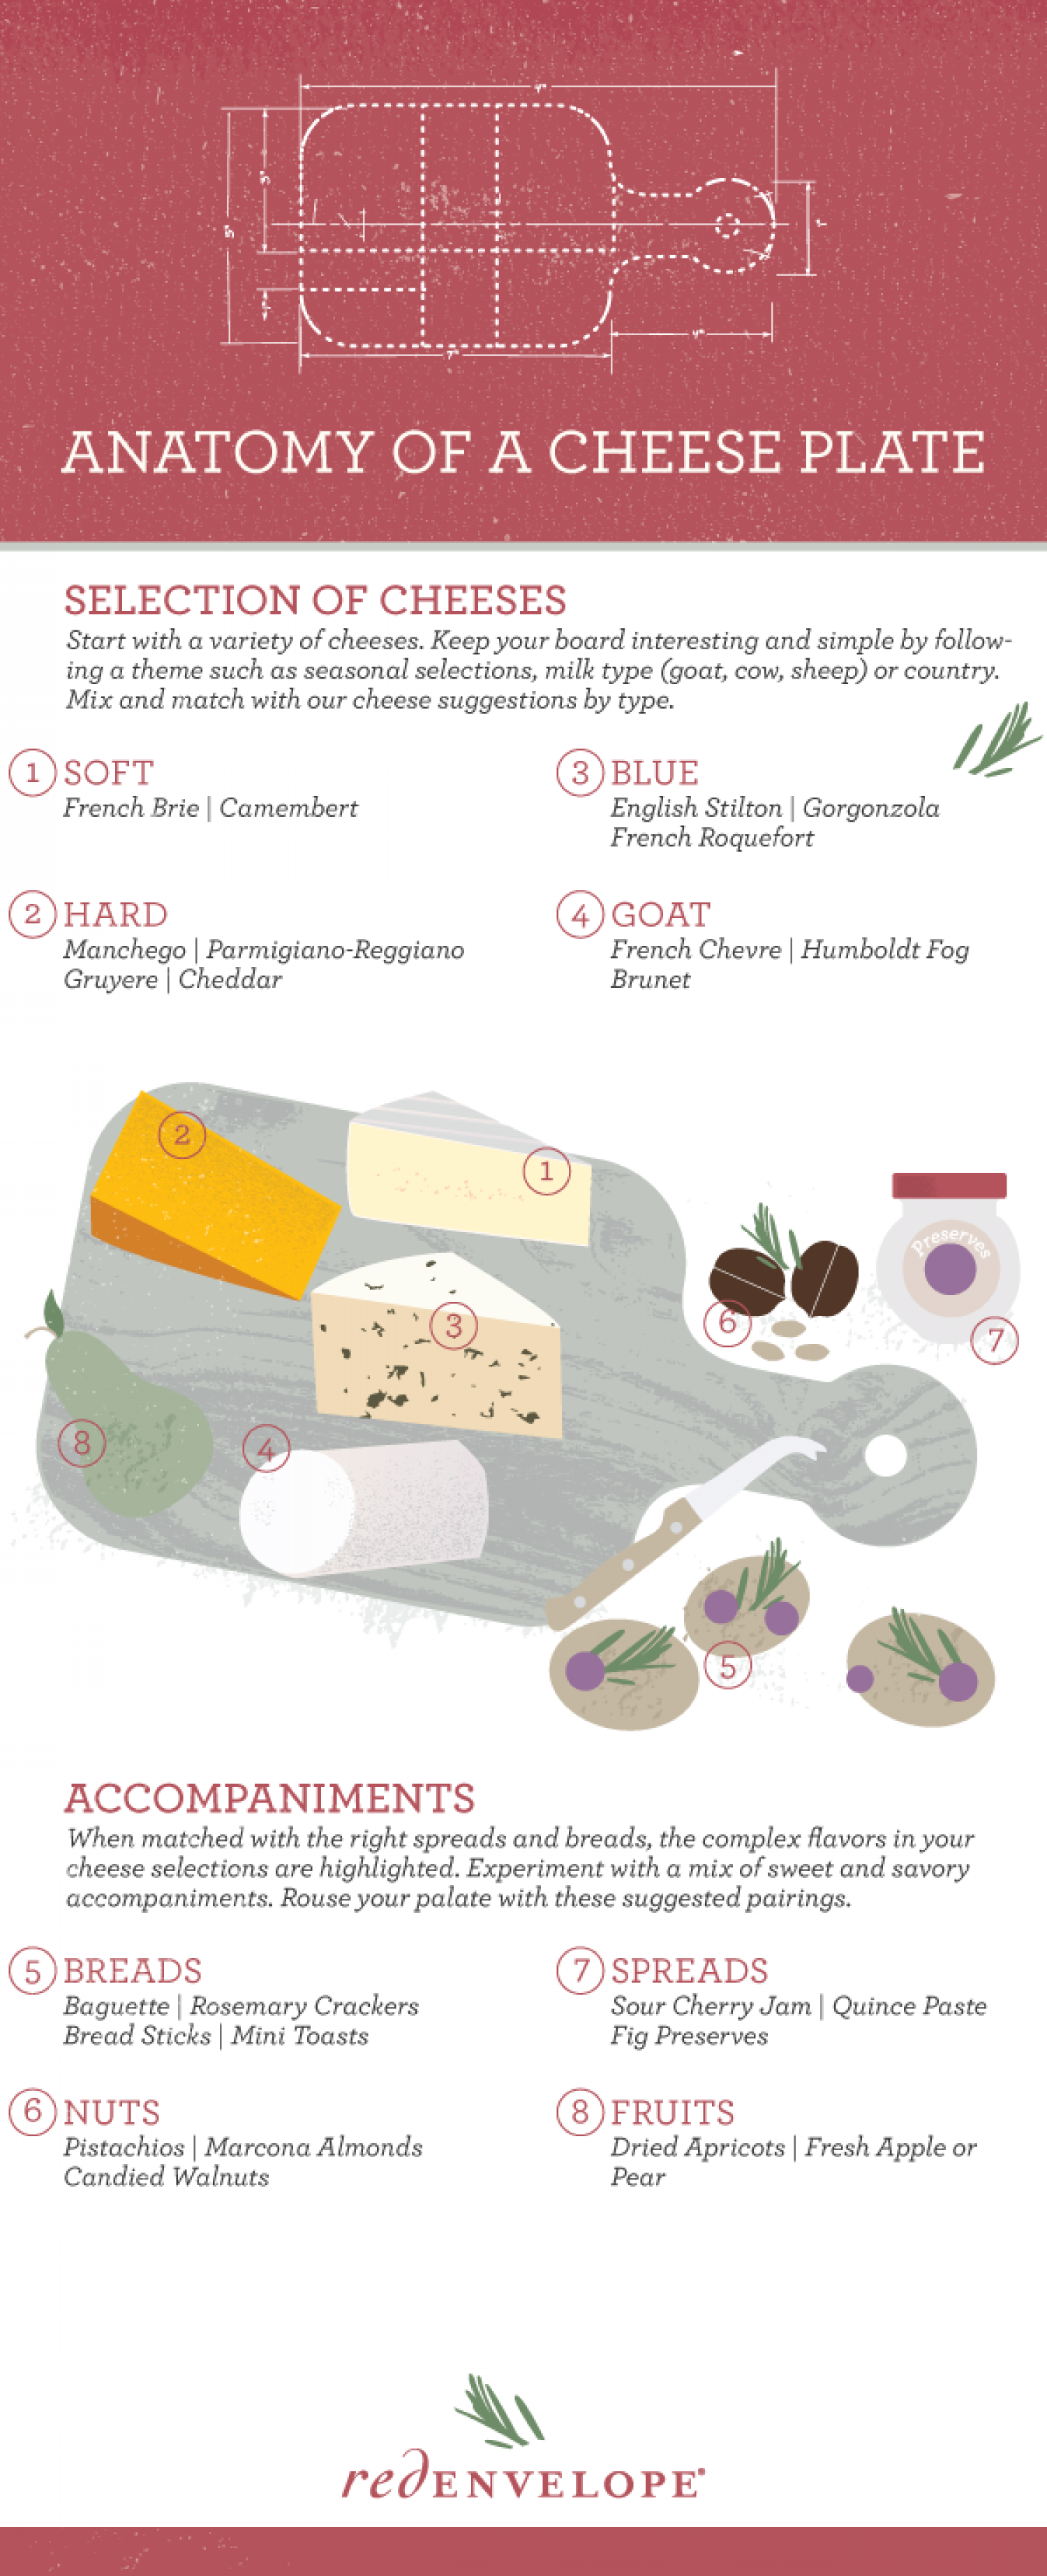 Anatomy of a Cheese Plate Infographic